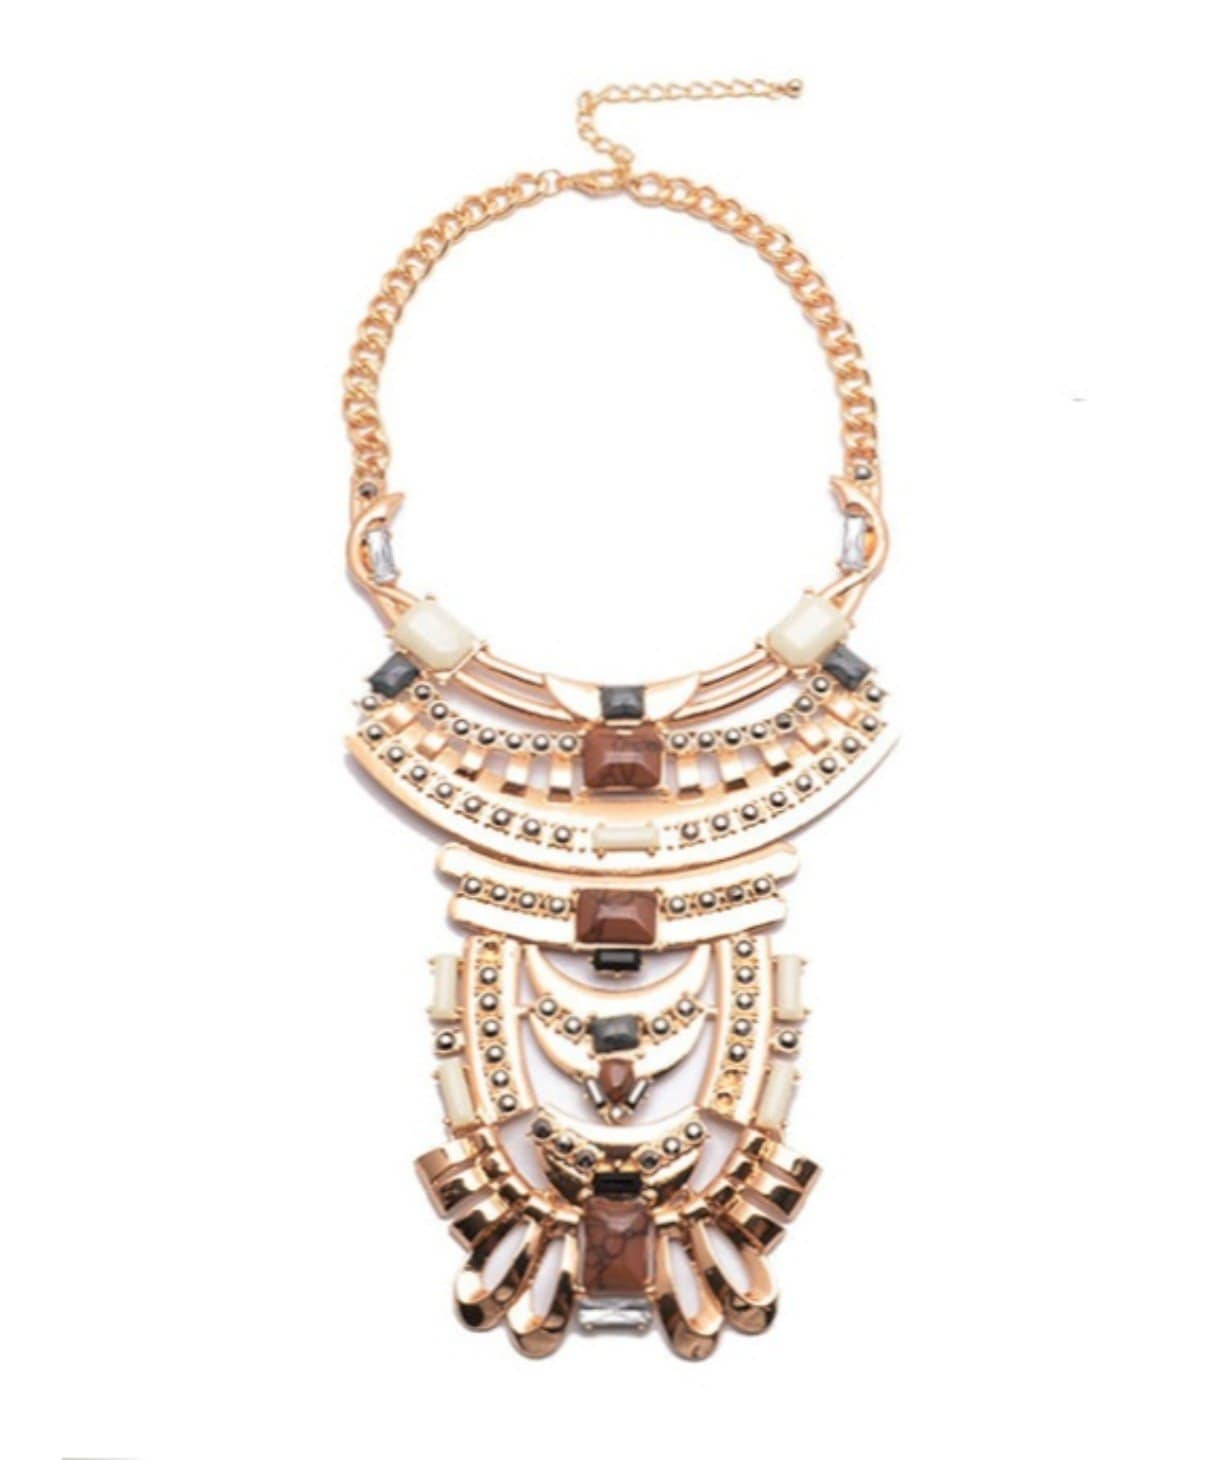 Glorious Russet Necklace - Uptownie